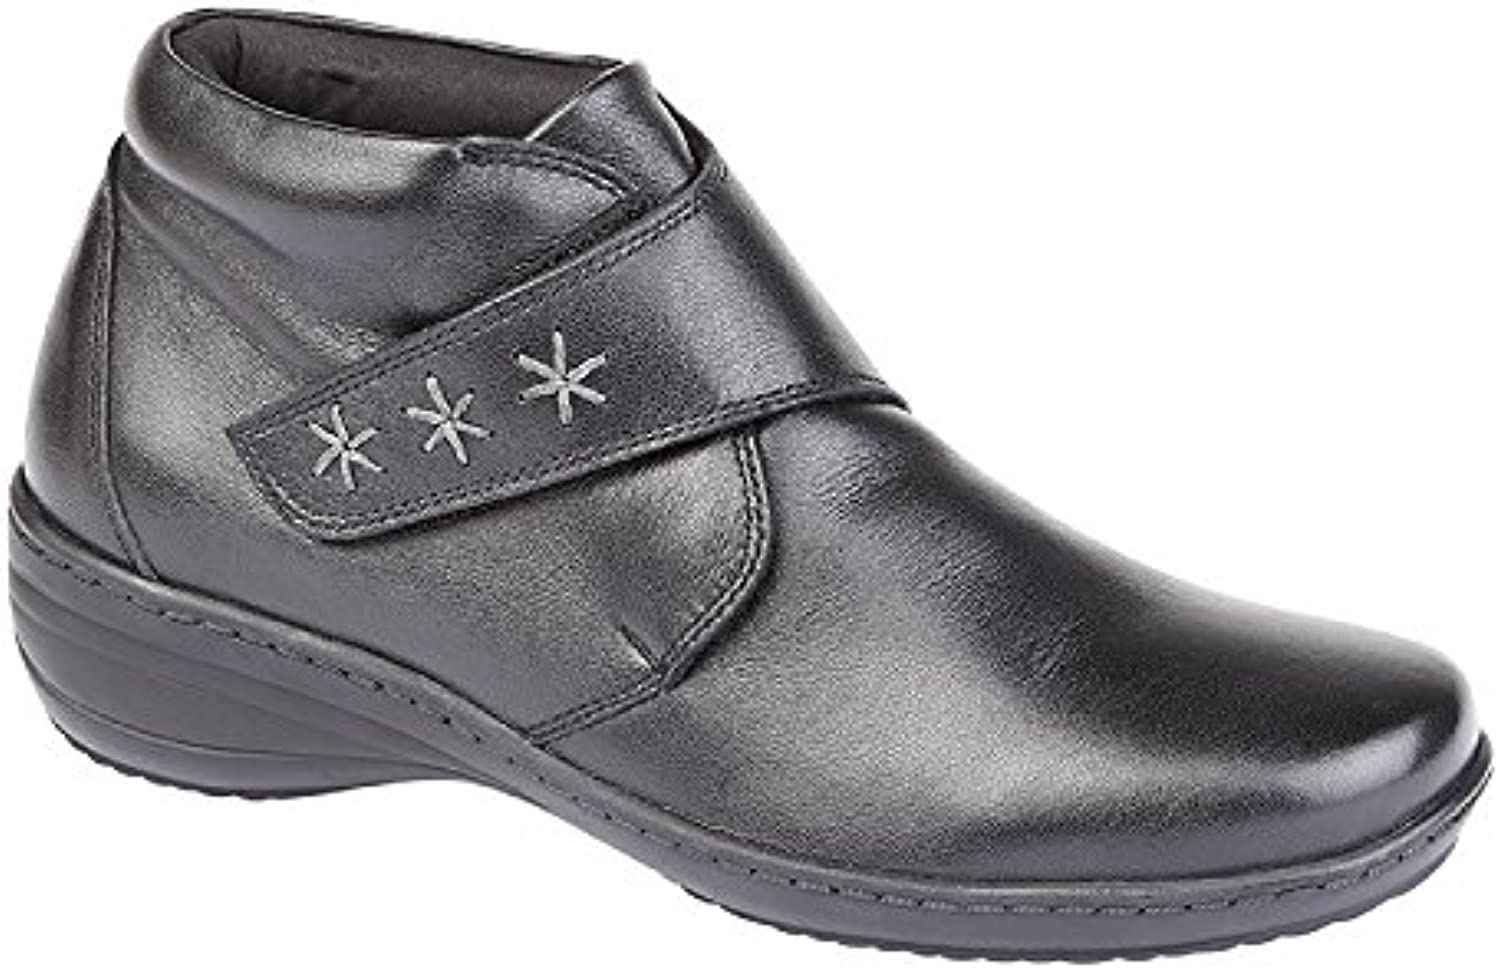 Mod Comfys - Stivaletto Basso Classico in Pelle - Donna | Outlet Store Online  | Sig/Sig Ra Scarpa